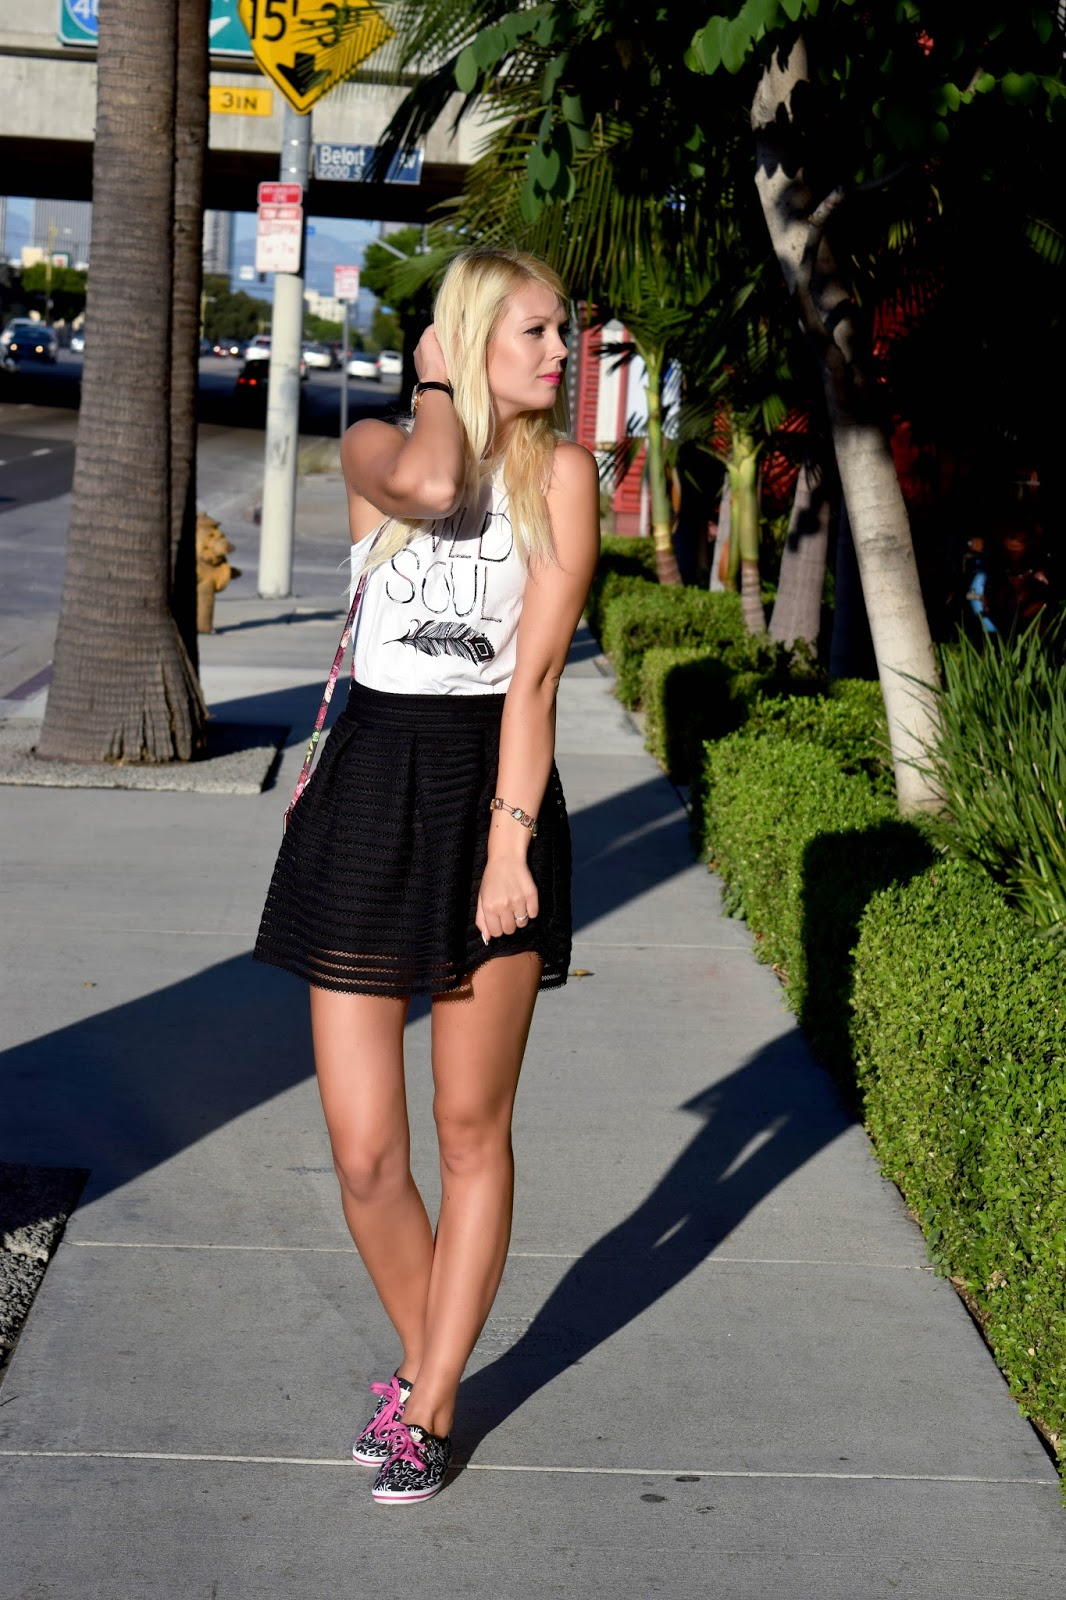 Black skirt, printed tank top, kate spade, kate spade sneakers, love sneakers, kate spade love, kate spade clutch, rose purse, kate spade rose purse